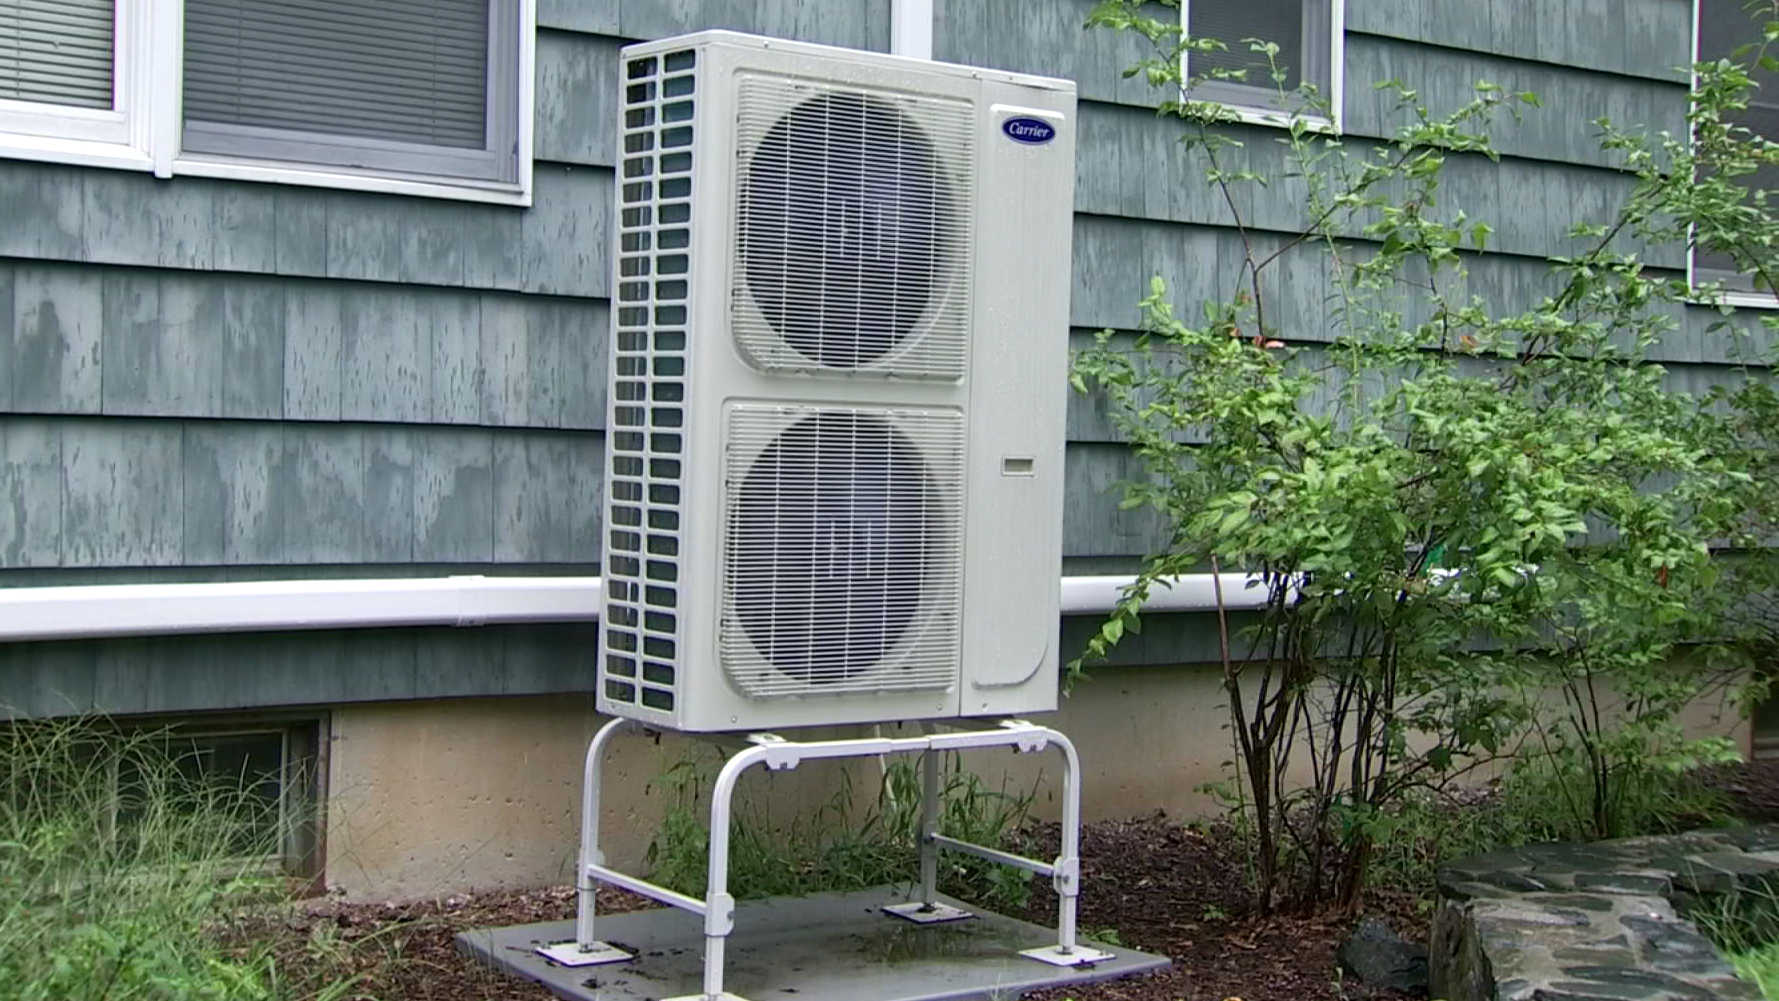 Milford Man Reaches His Boiling Point Over His HVAC System